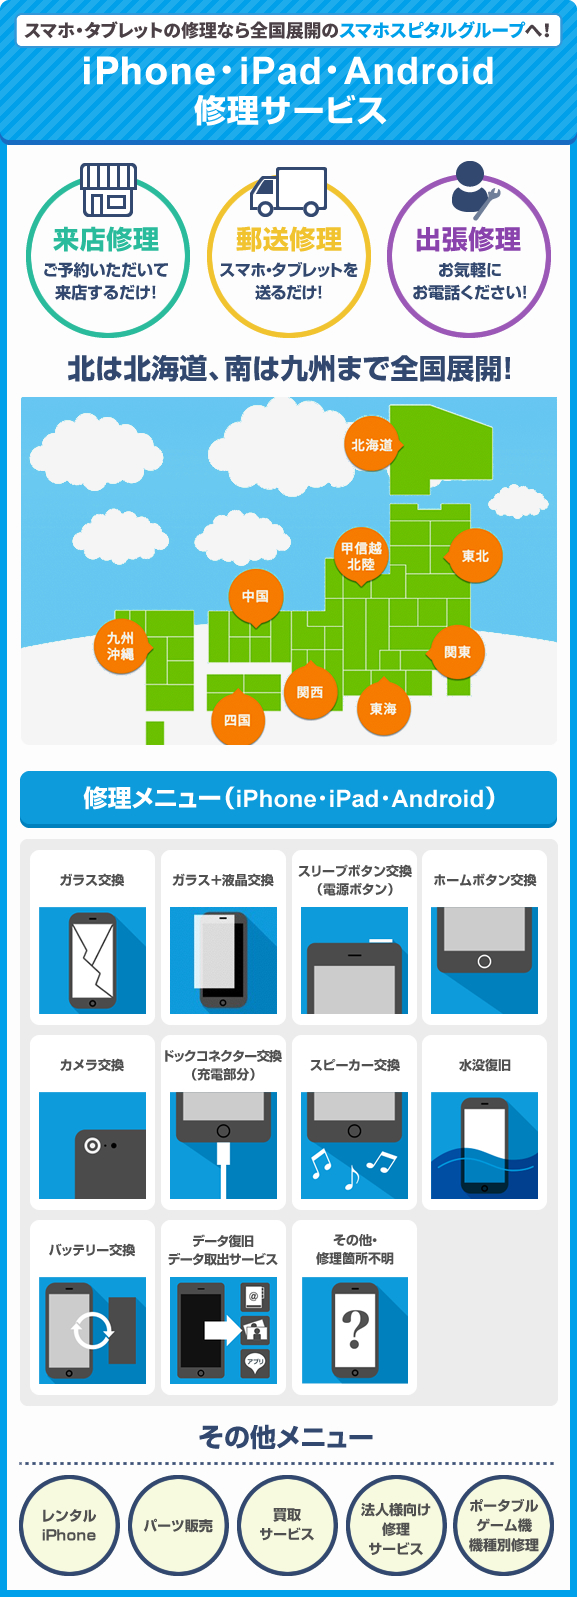 iPhone・iPad・Android 修理サービス